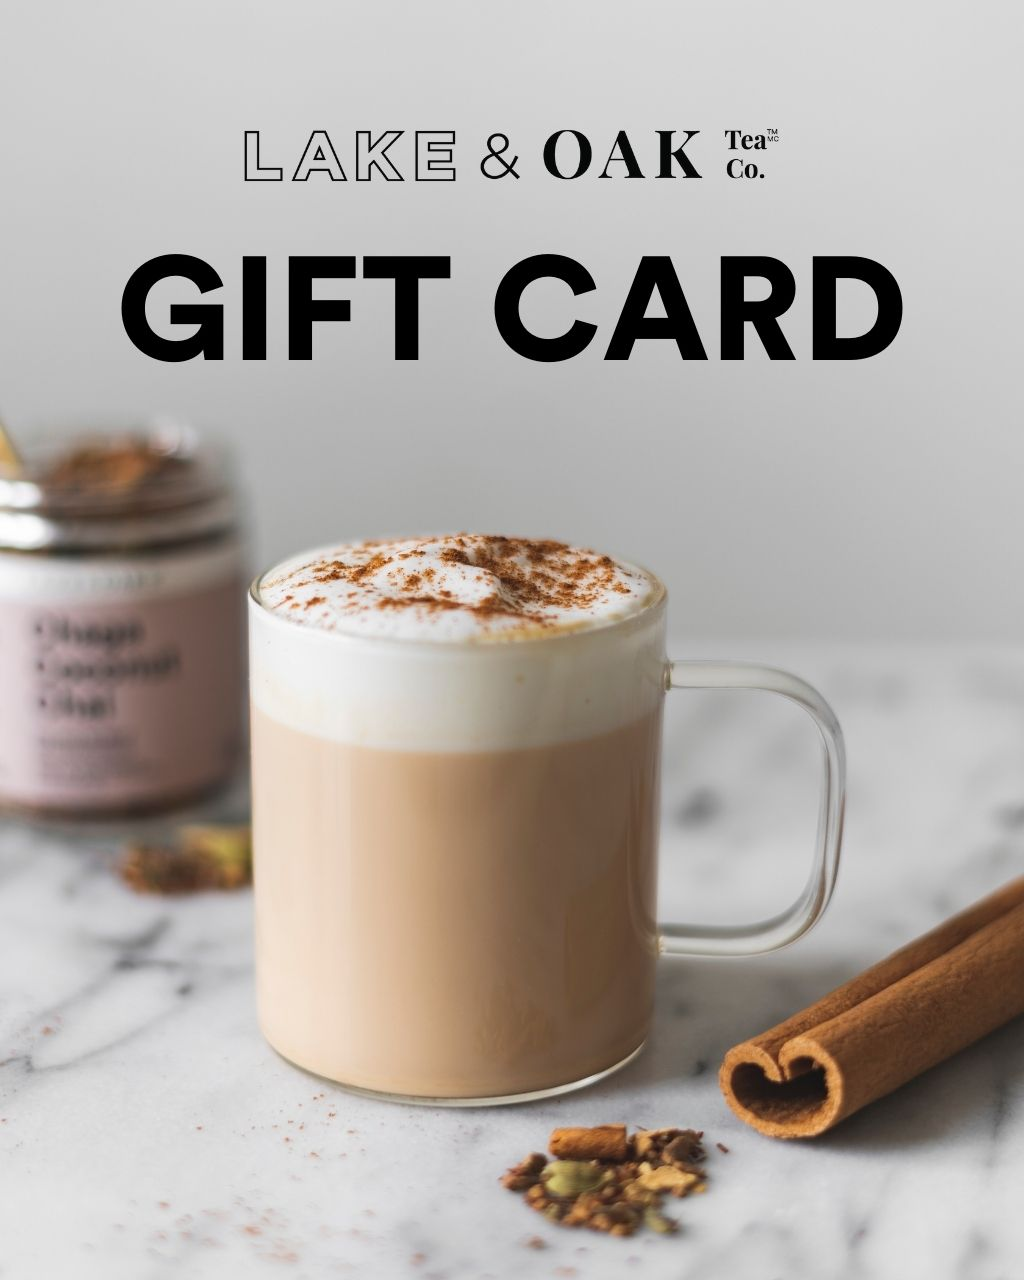 Lake & Oak Gift Card